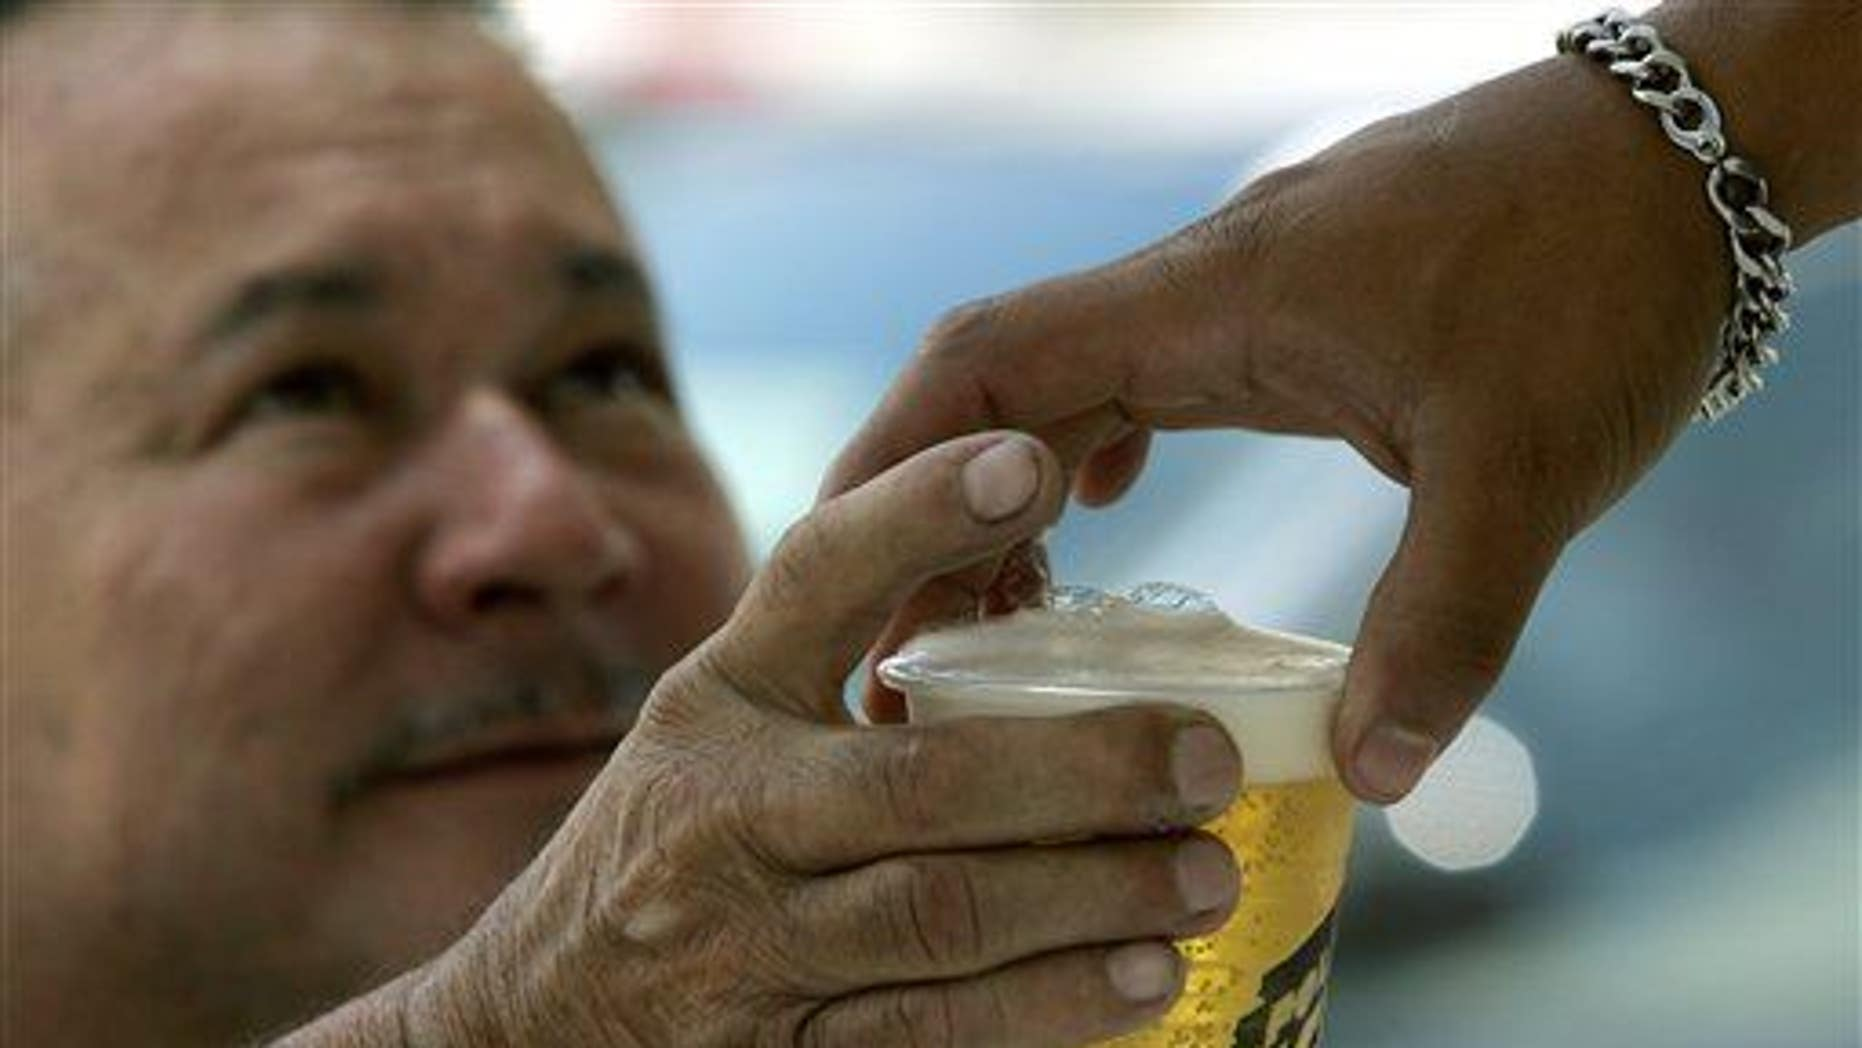 A man buys beer in an outdoor bar at Caracas's auto show, Sunday, Oct 7, 2007.  Venezuela's President Hugo Chavez is on a moral crusade, preaching against vices from alcohol to cholesterol, vowing to curb whisky imports and ordering beer trucks off the street.